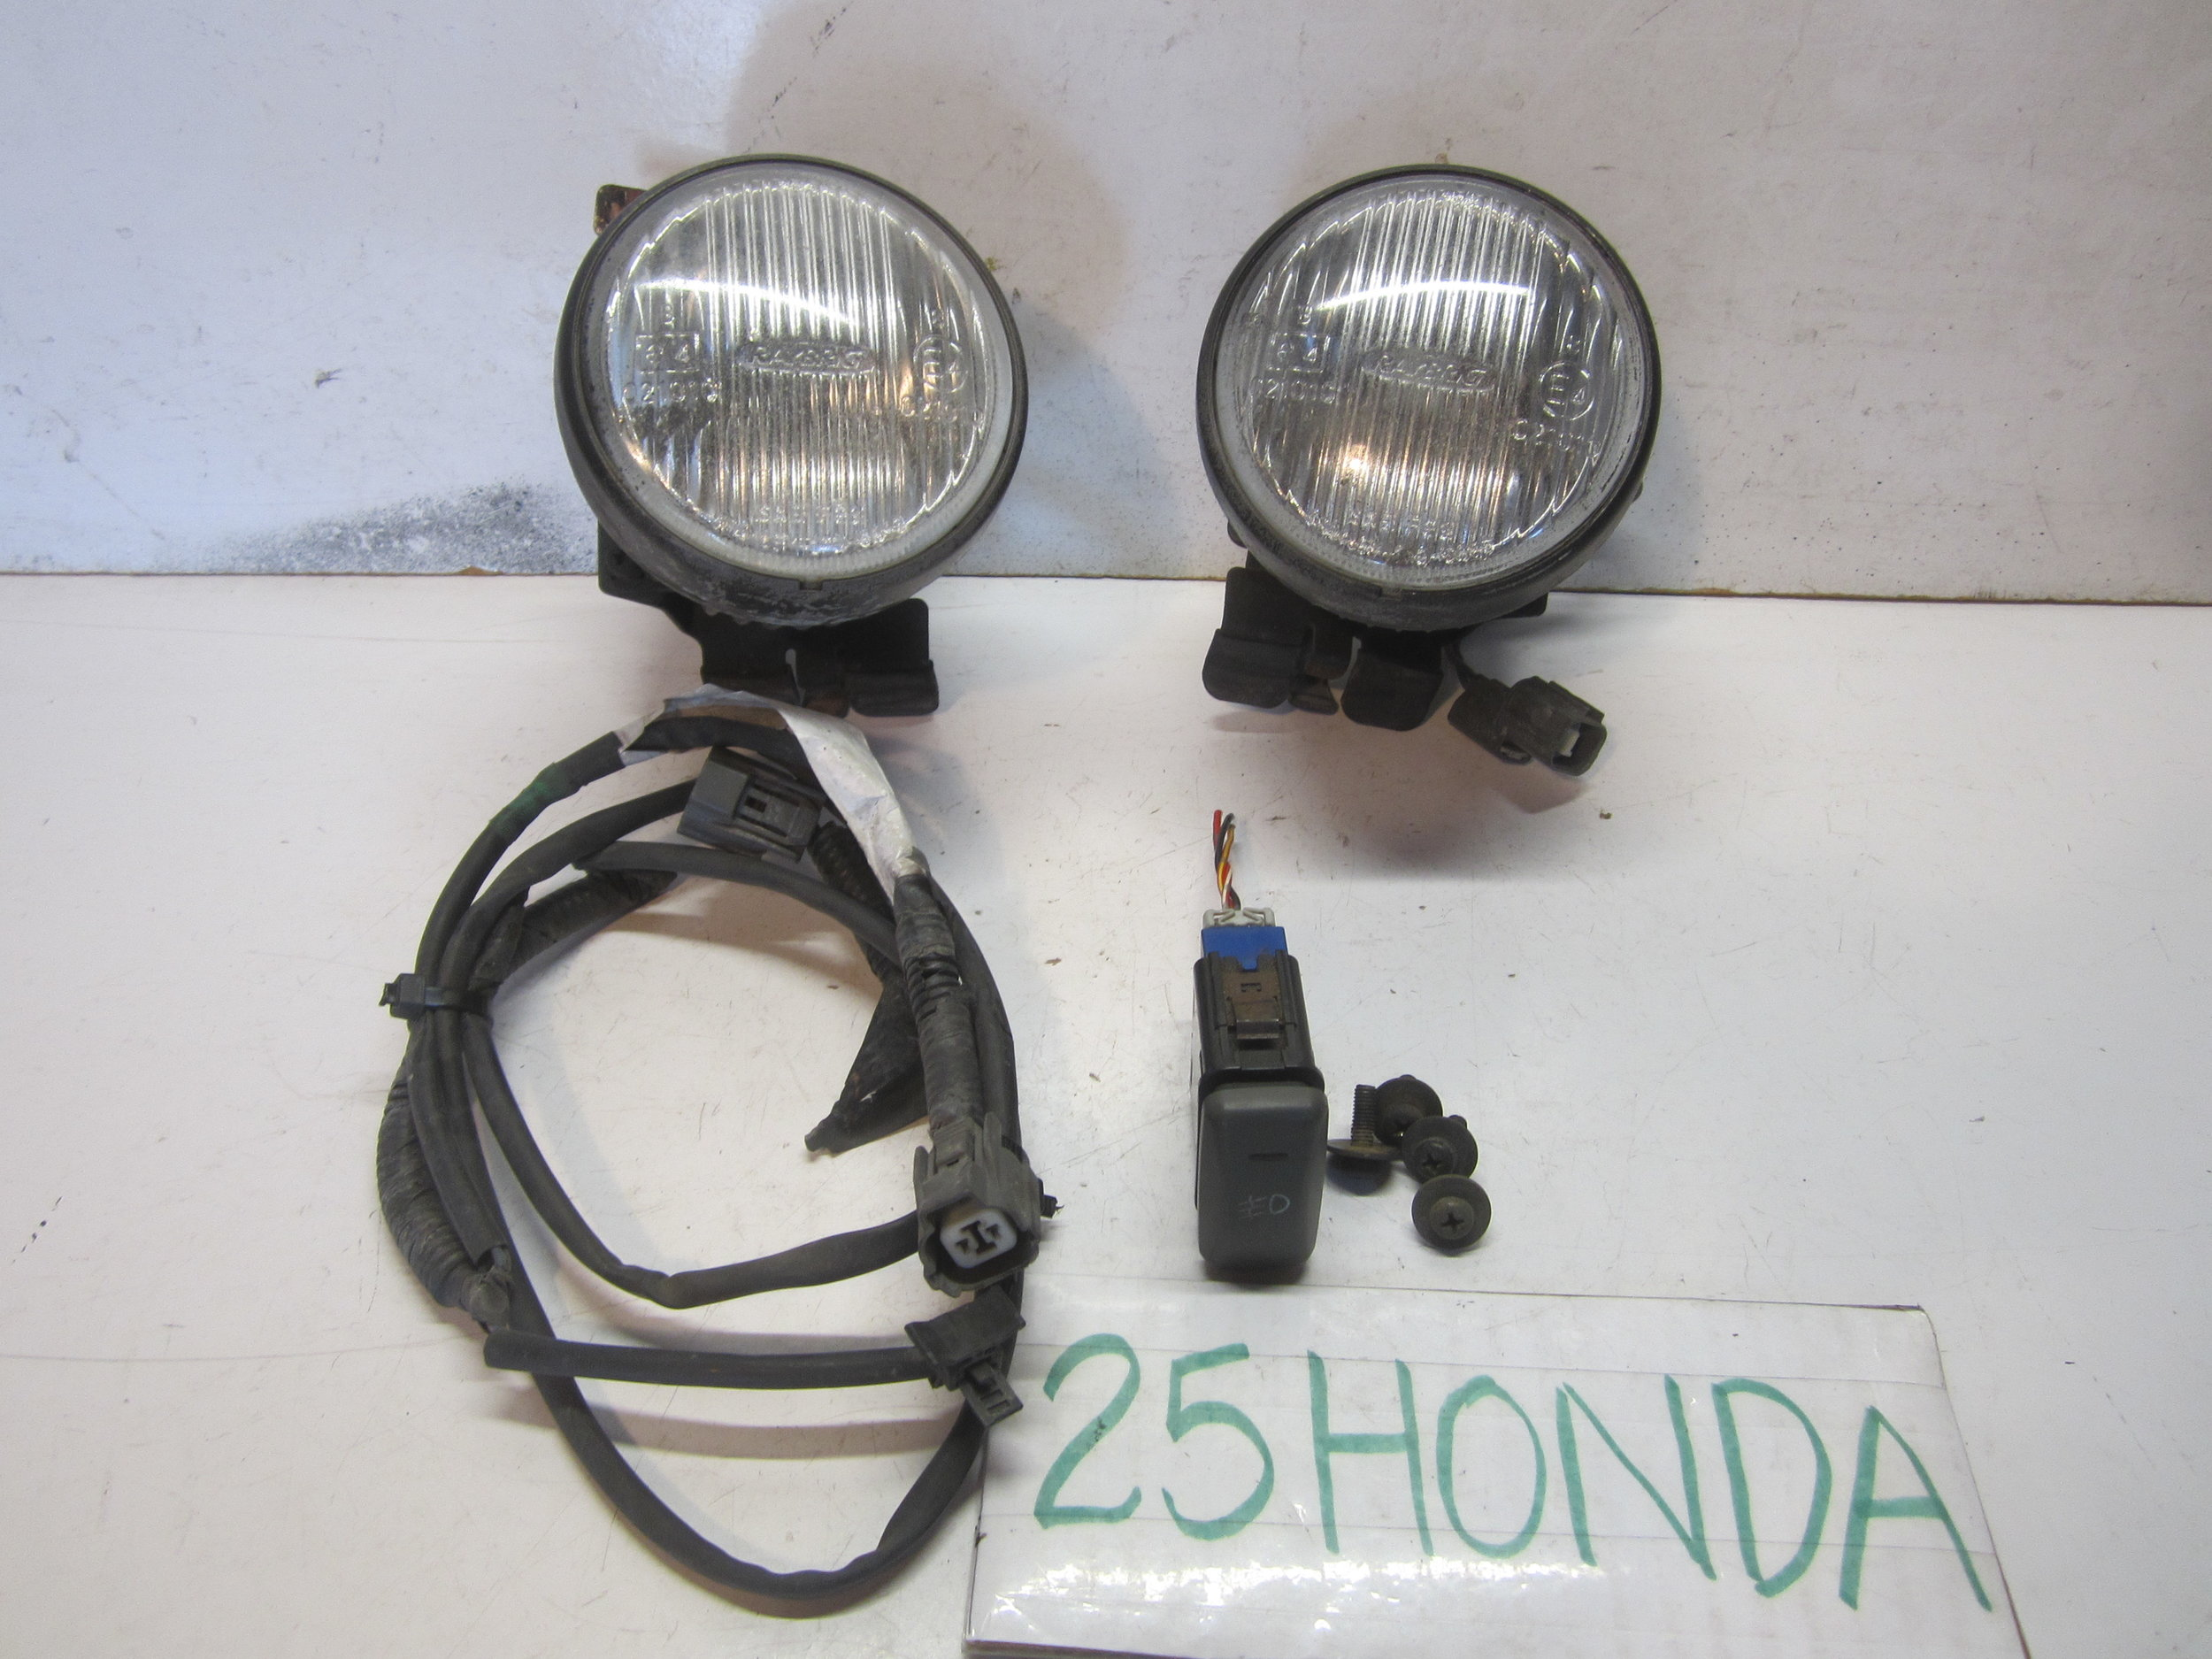 1996 1998 honda civic sedan raybrig factory optional fog lights 25hondalouver fog light armrest headlight side marker corner light console cup holder  [ 1500 x 1125 Pixel ]